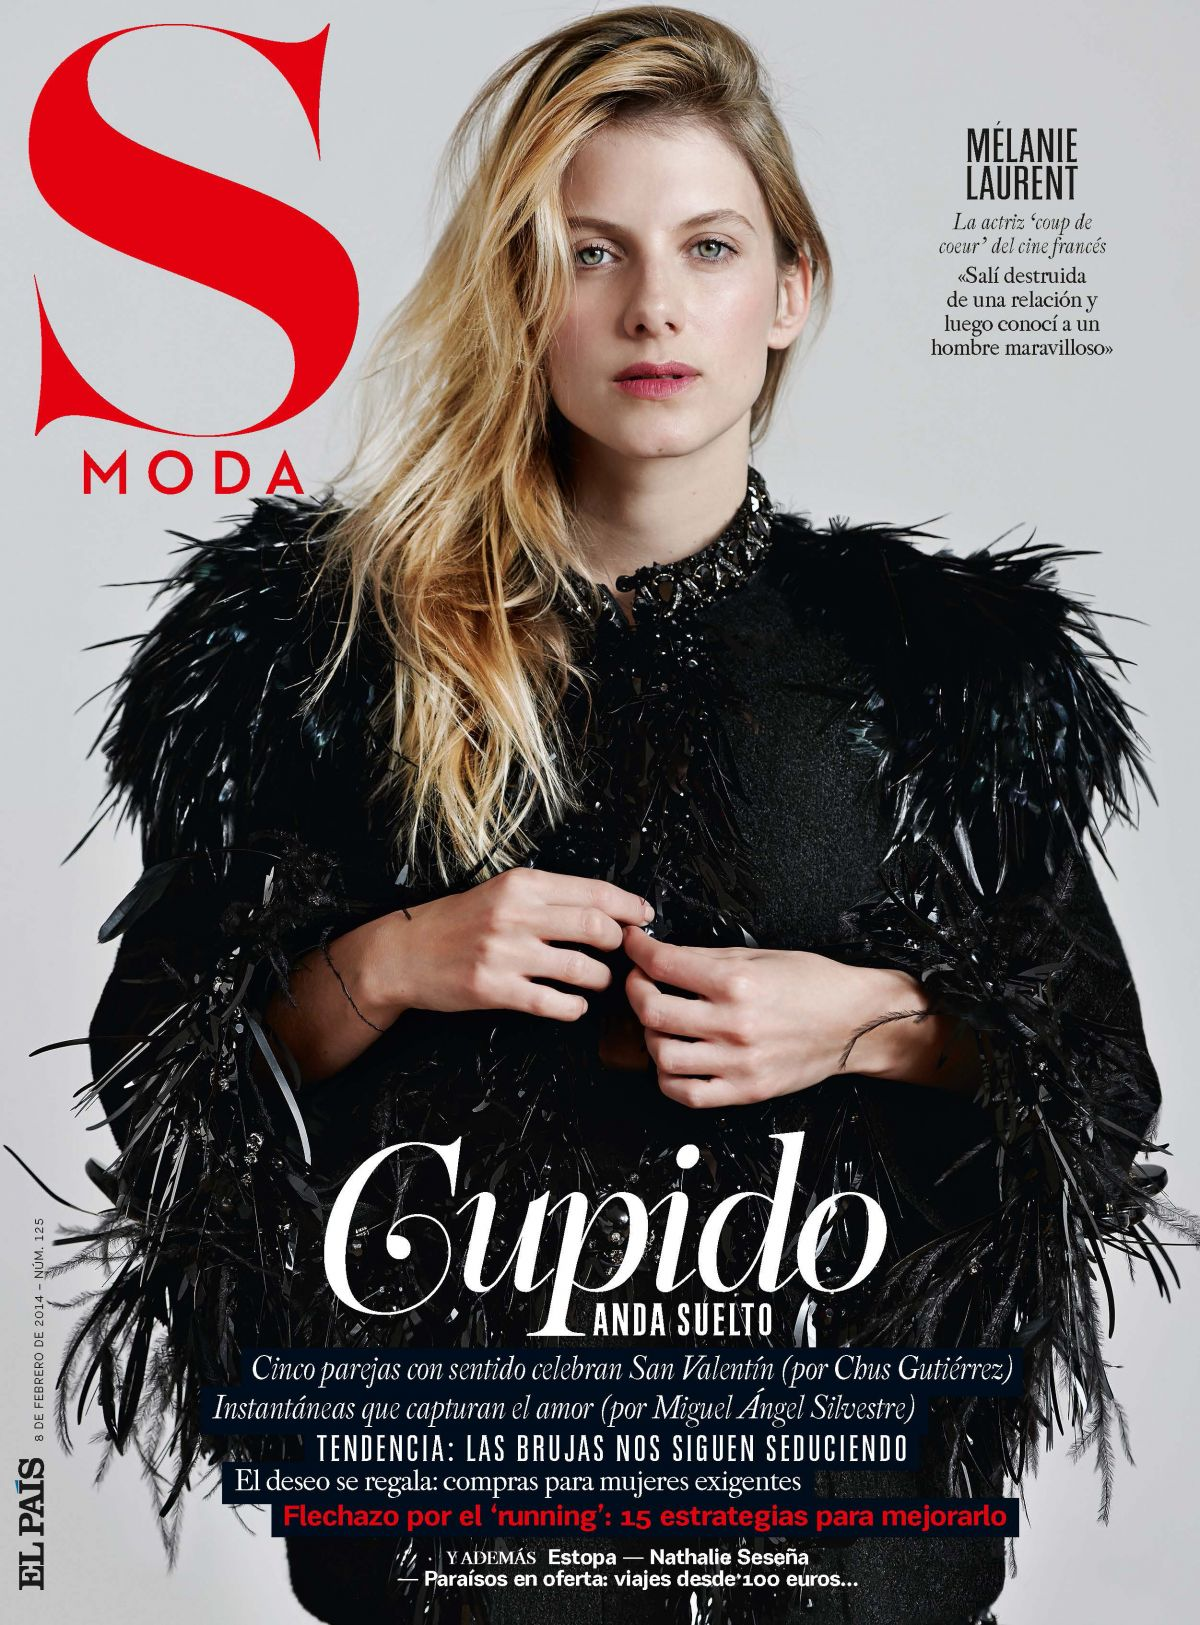 MELANIE LAURENT- Eric Guillemain Photoshoot for S Moda Magazine, February 2014 Issue